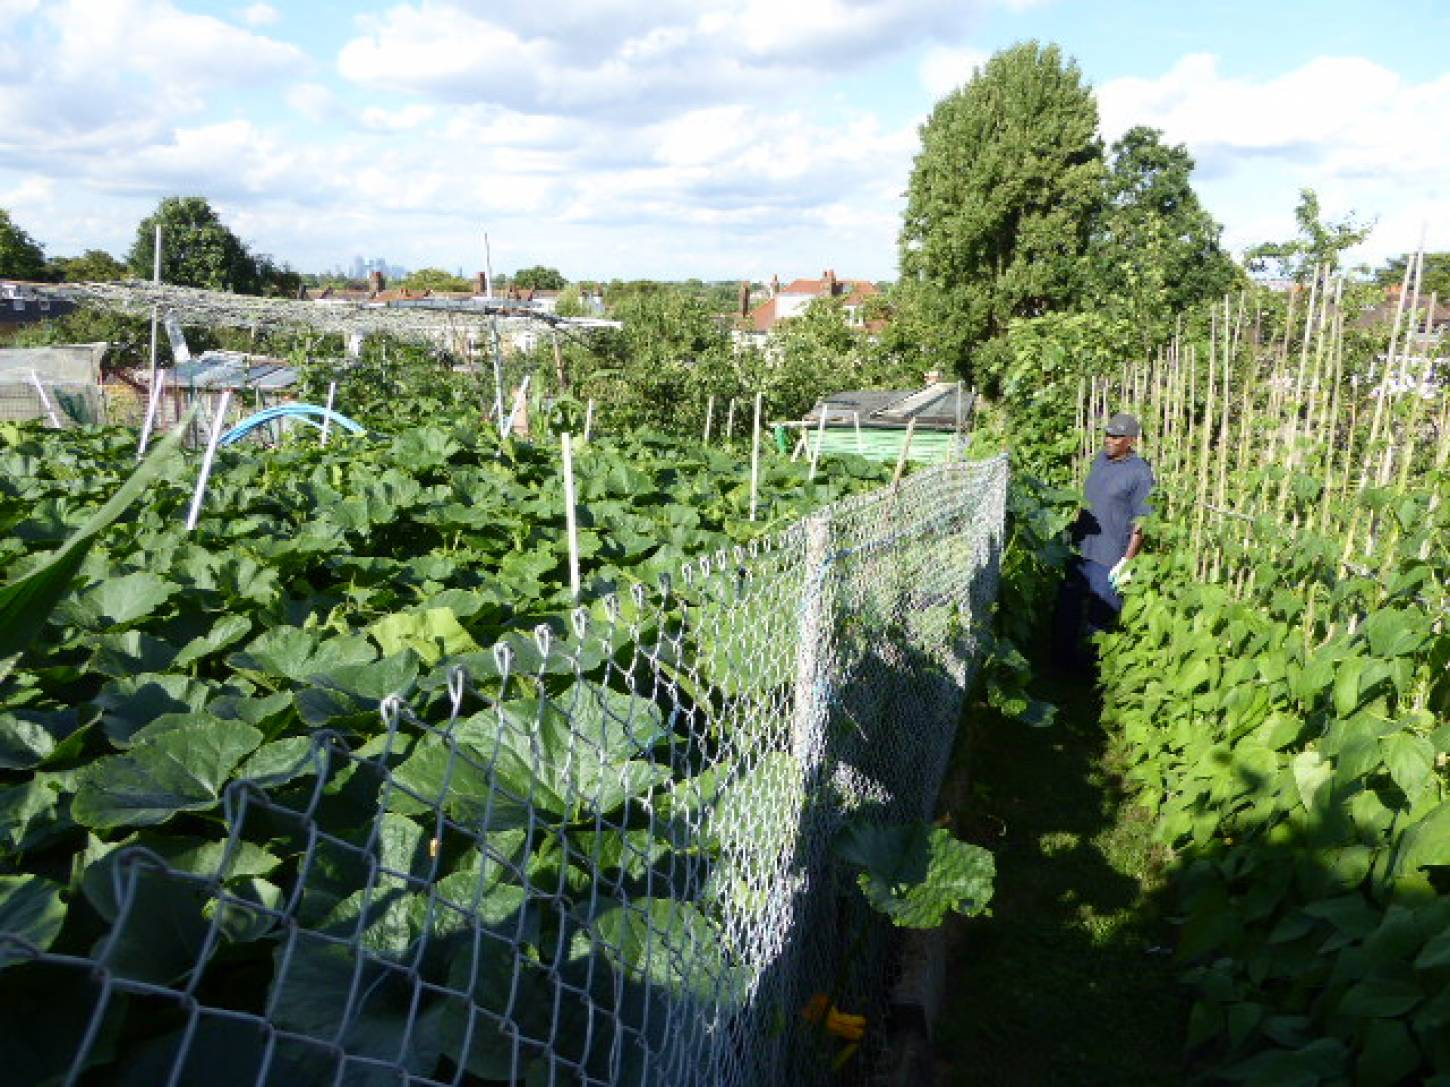 Peruvian maize seeds passed to Roy on allotments - 5:55pm&nbsp;3<sup>rd</sup>&nbsp;Jul.&nbsp;'17  <a href='http://maps.google.com/?t=h&q=51.444194,-0.099431&z=18&output=embed' target=_blank><img src='http://www.brockwell-bake.org.uk/img/marker.png' style='border:none;vertical-align:top' height=16px></a>